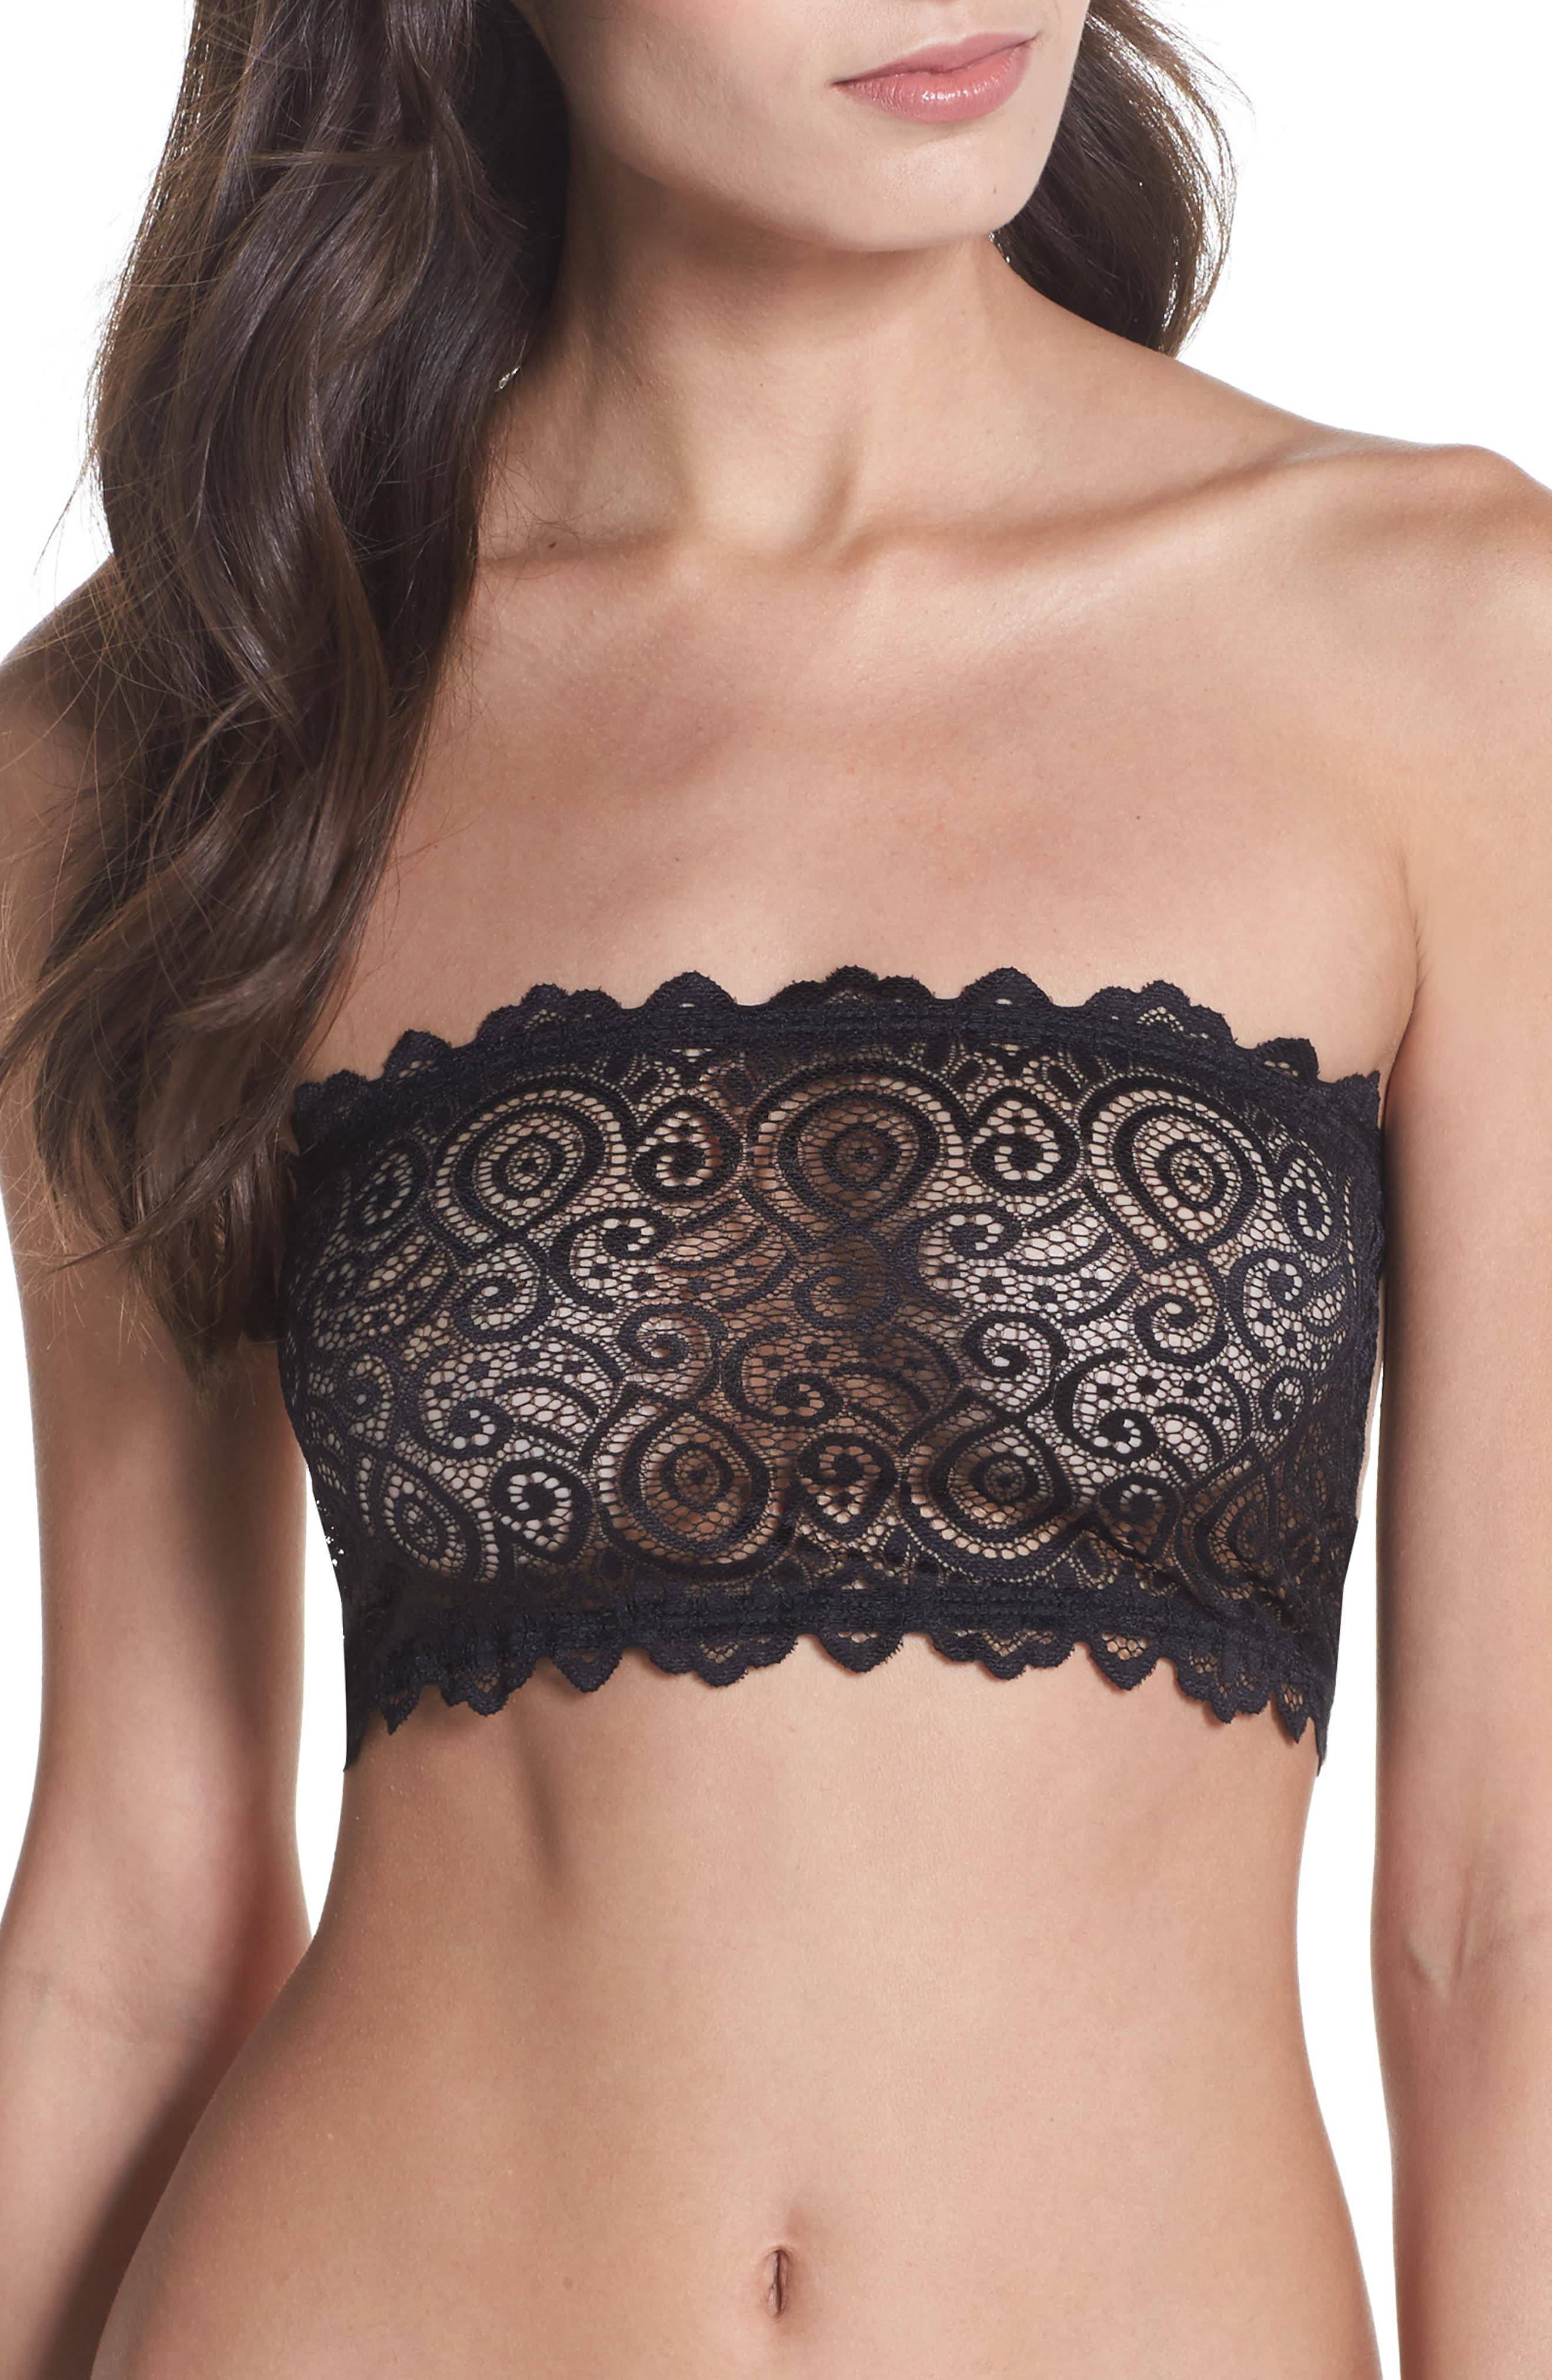 Intimately FP Lace Reversible Seamless Bandeau,                             Main thumbnail 2, color,